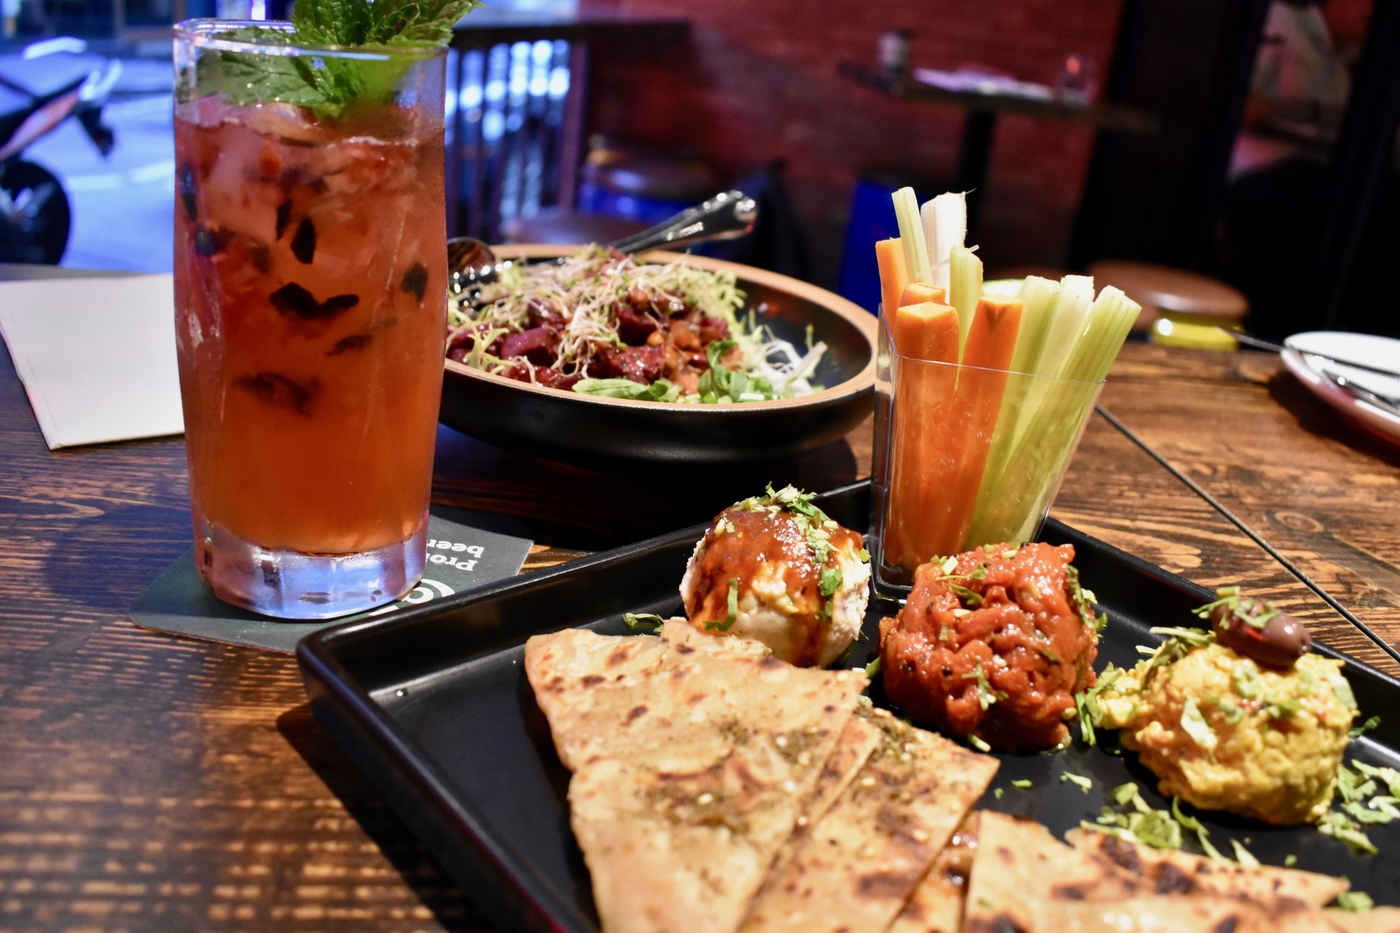 Cardamon Street makes delicious Indian food with a twist in SoHo